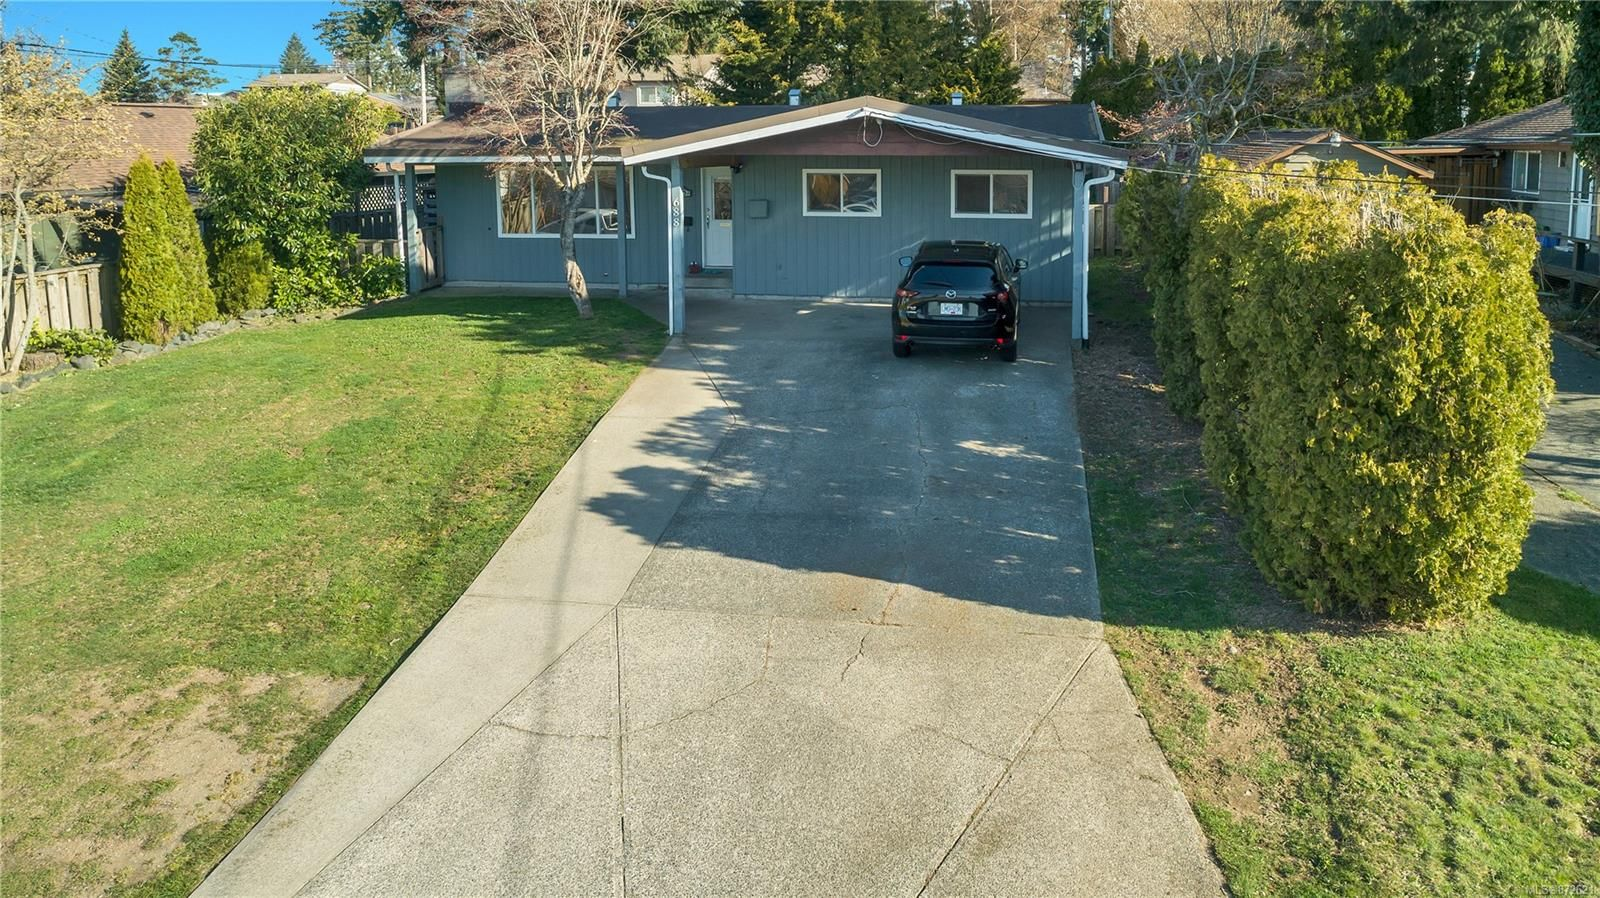 Main Photo: 688 Glenalan Rd in : CR Campbell River Central House for sale (Campbell River)  : MLS®# 872621